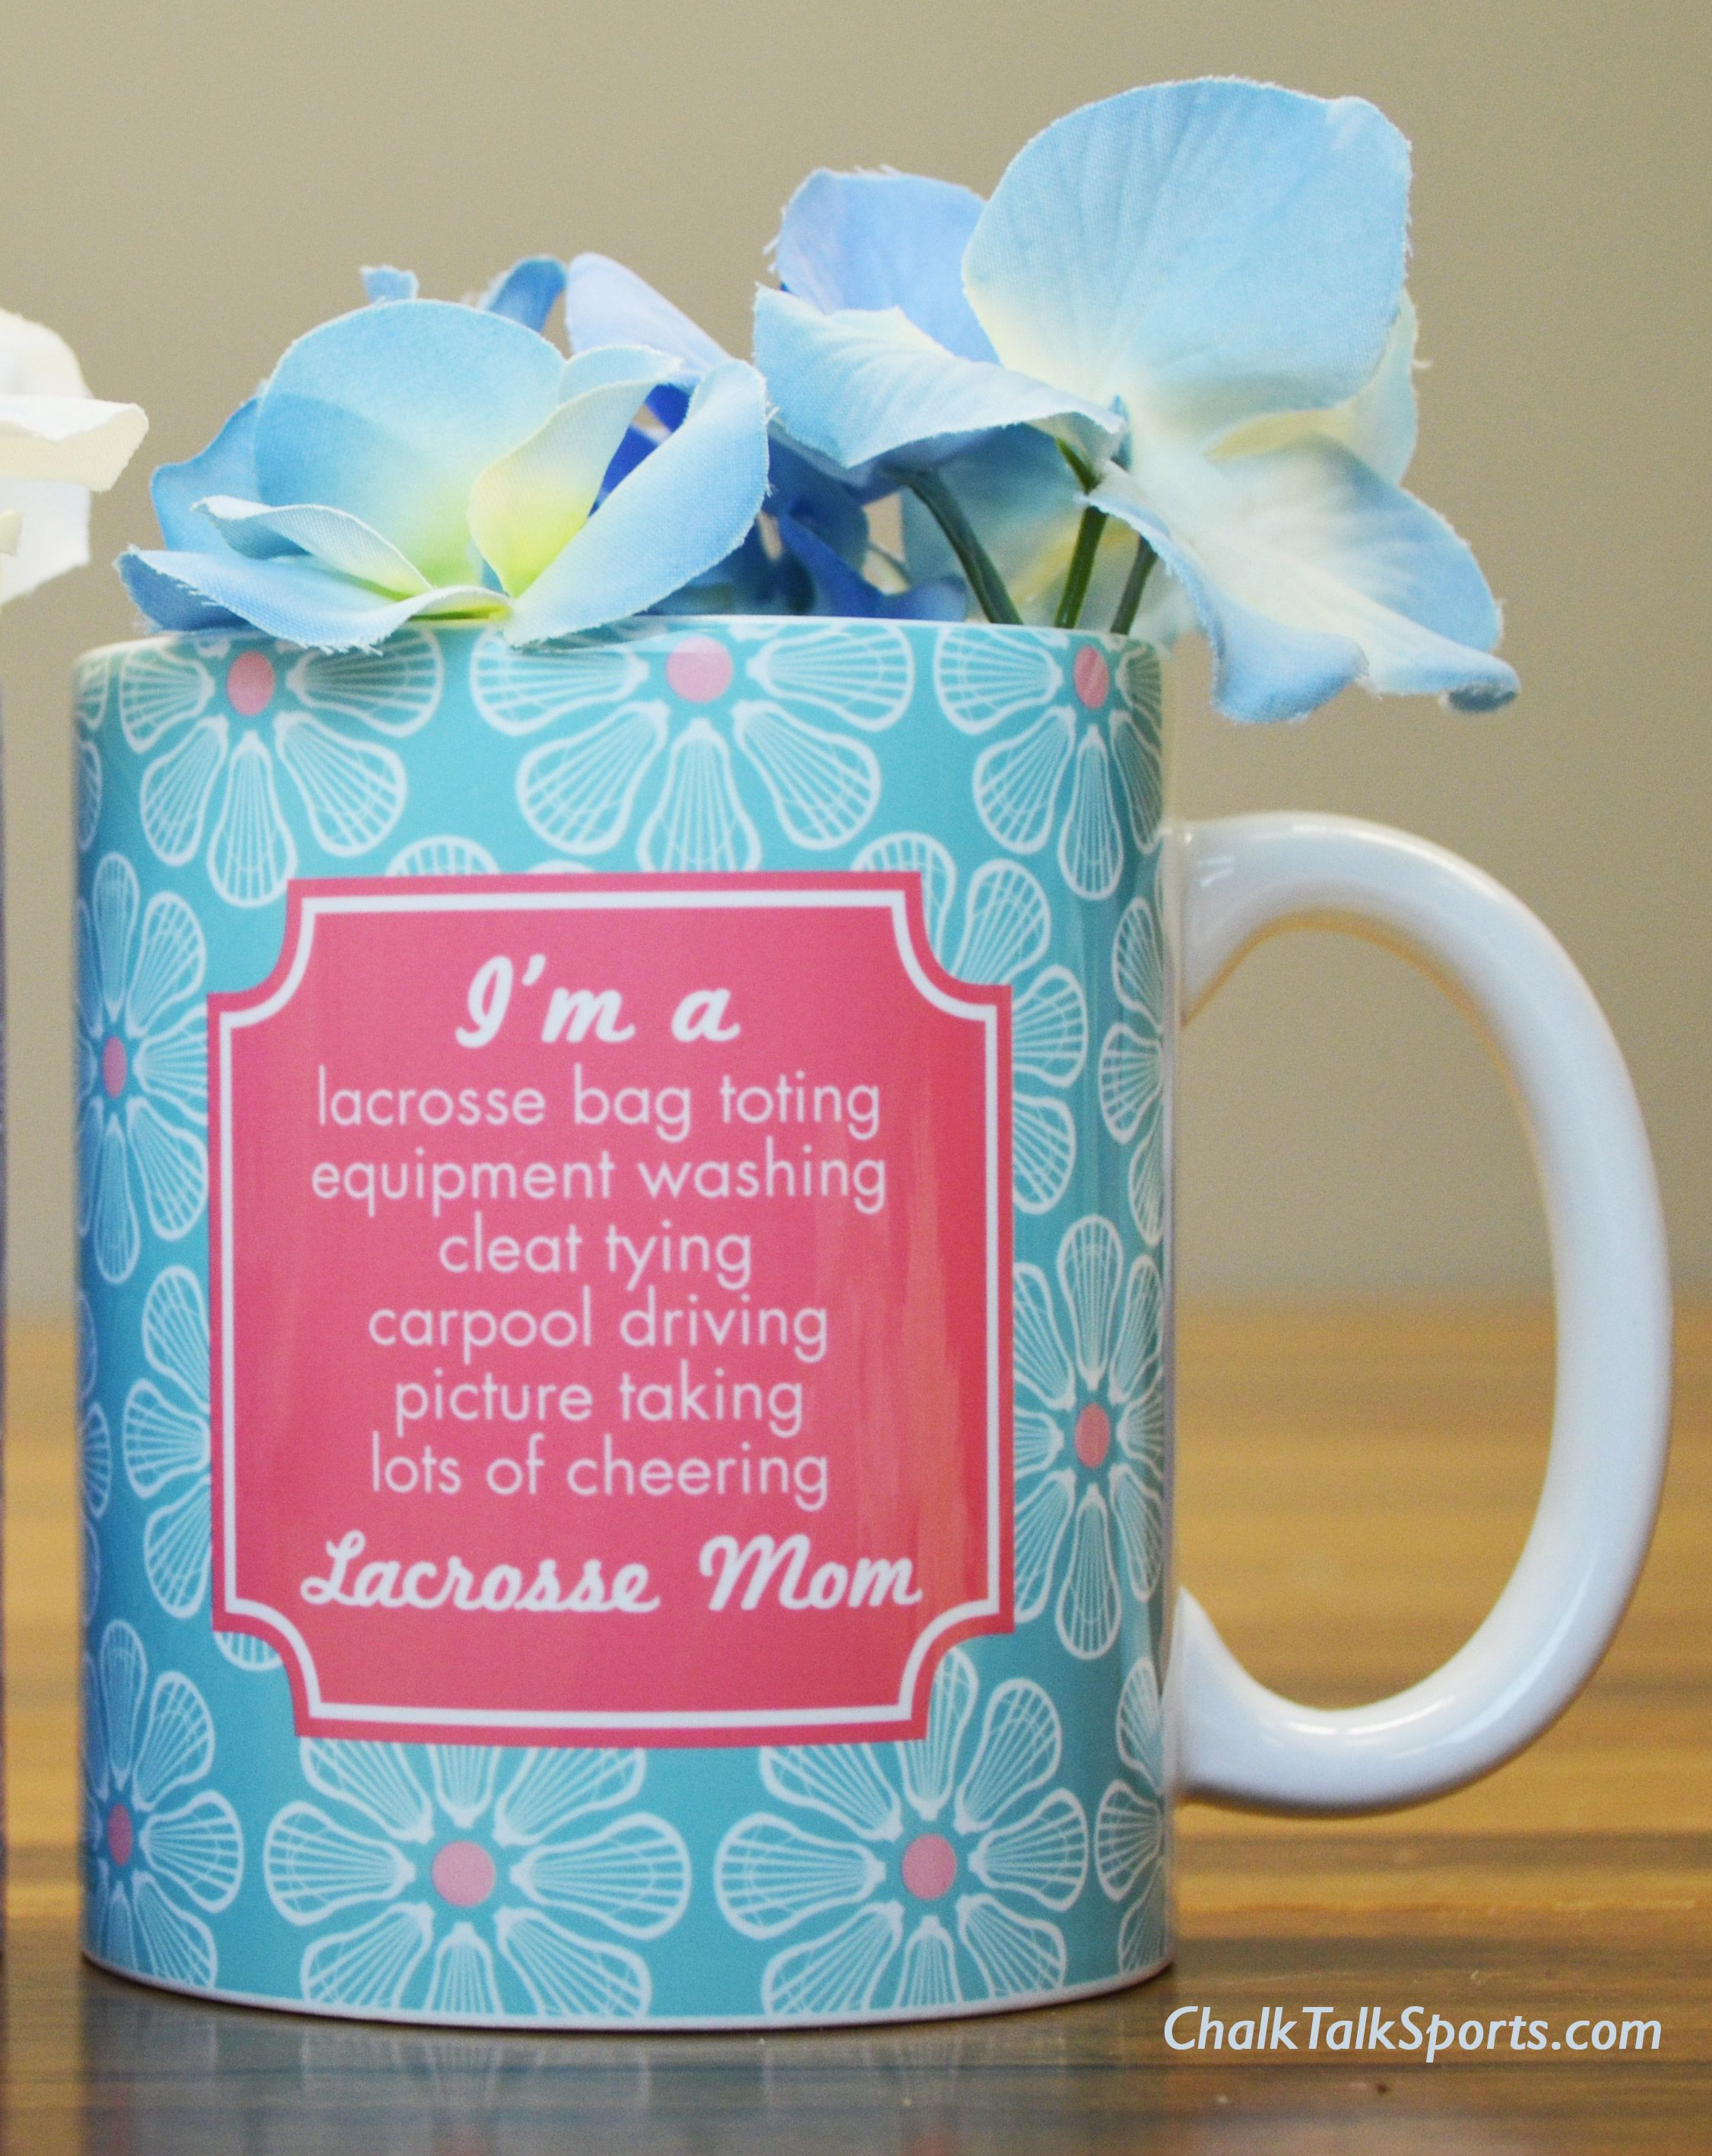 Lacrosse Mom Gifts from ChalkTalkSports. The perfect gifts for your lacrosse mom this Mother's Day